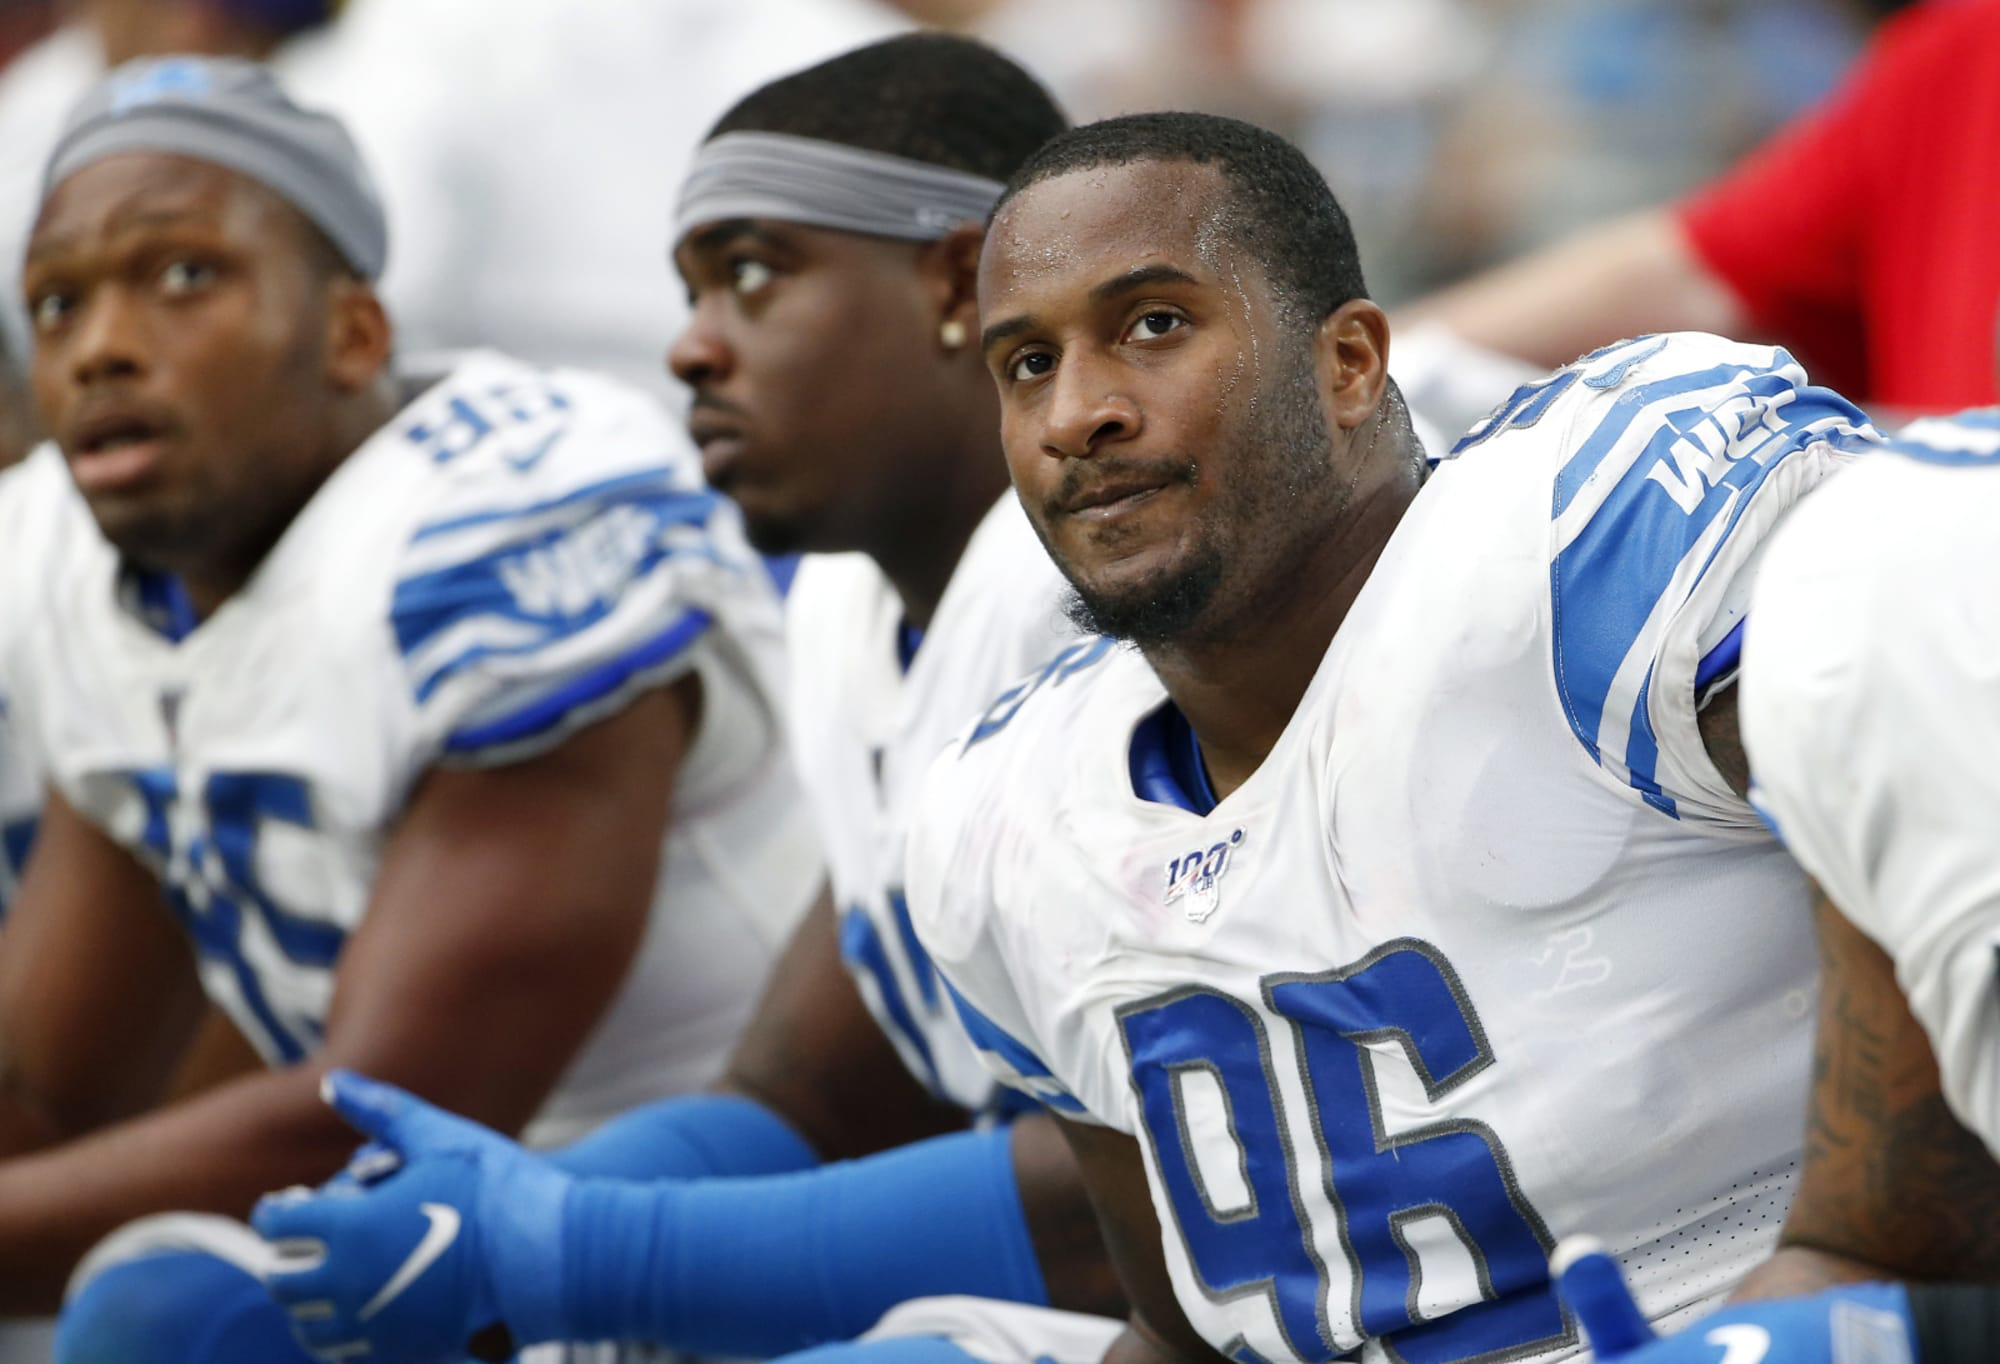 Detroit Lions: Signing a familiar face with the offseason in limbo critical